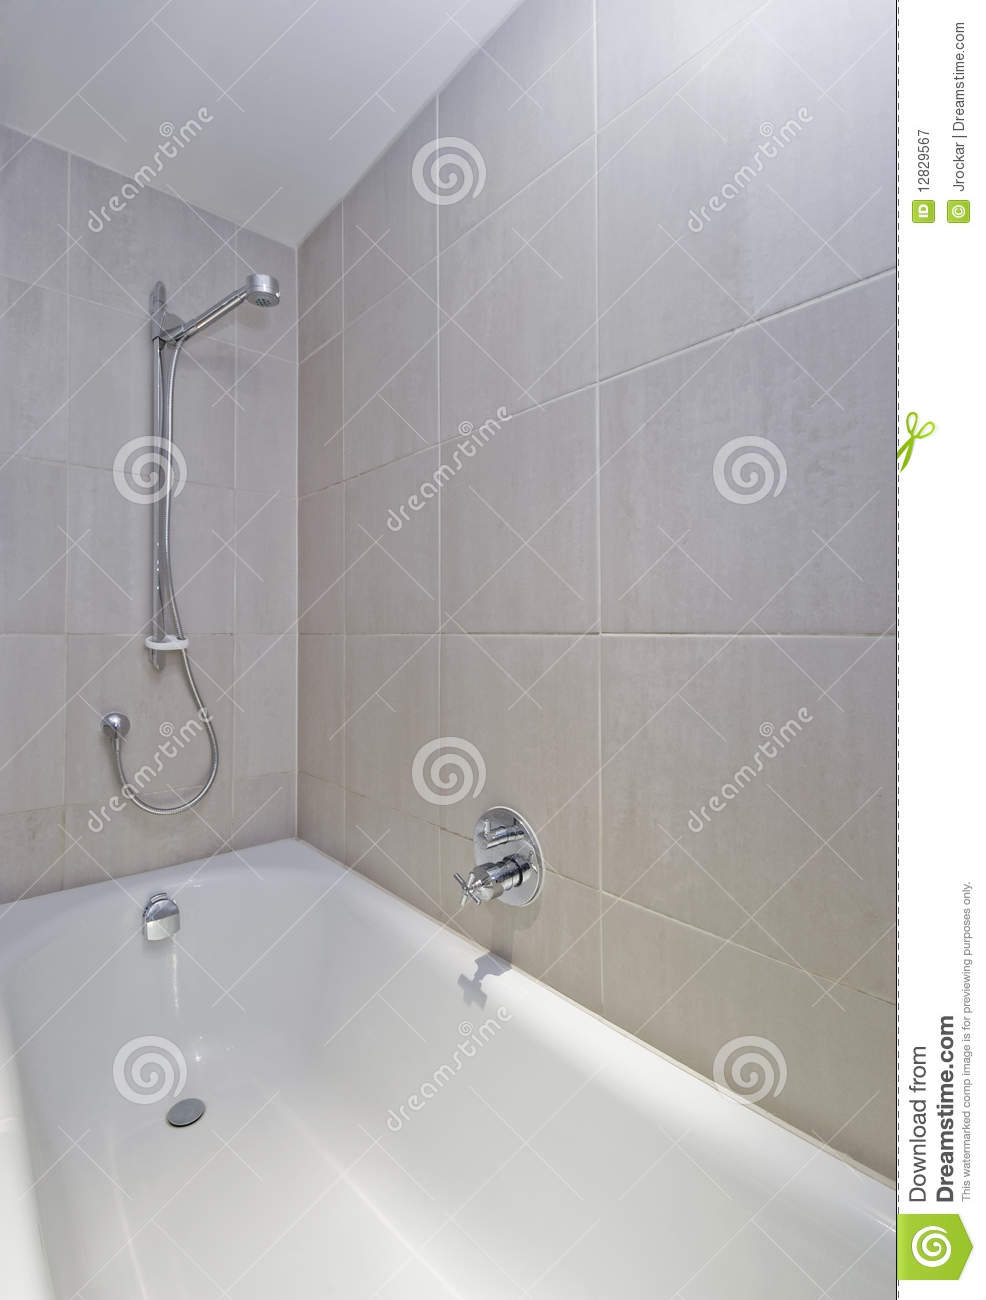 Baño De Tina Con Eucalipto:Bath Tub with Shower Attachment